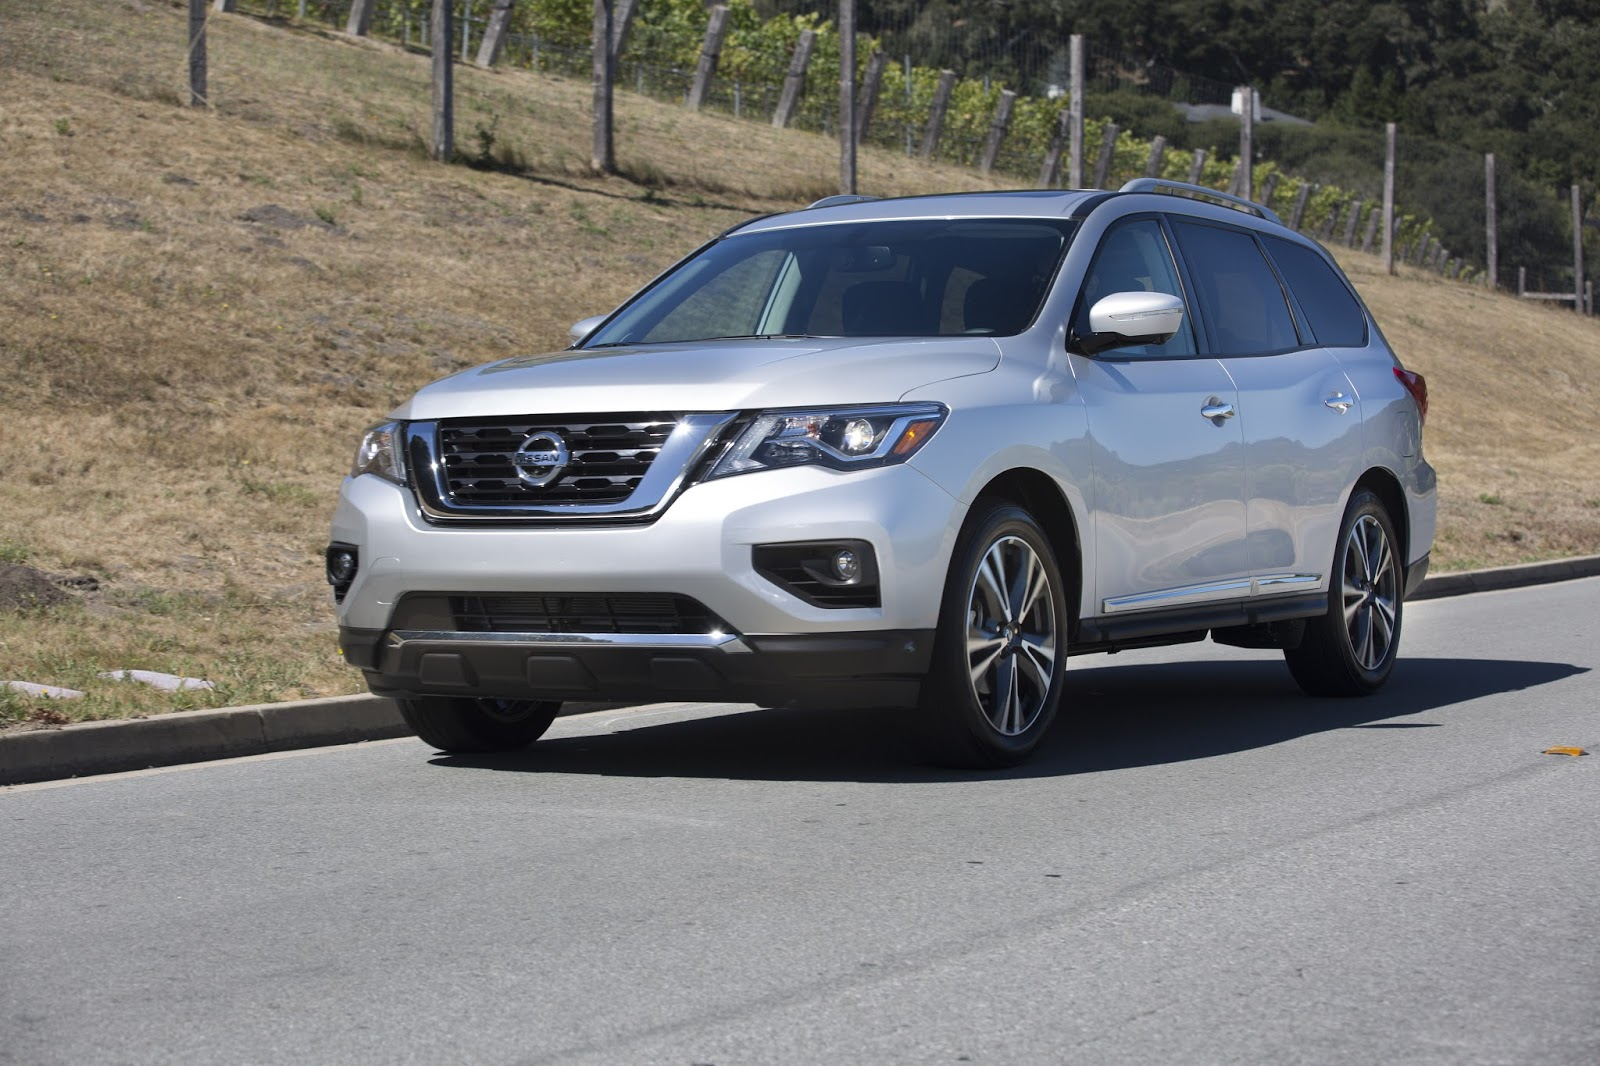 Autoglo pathfinder road trip warrior gets better with age for Nissan armada vs honda pilot